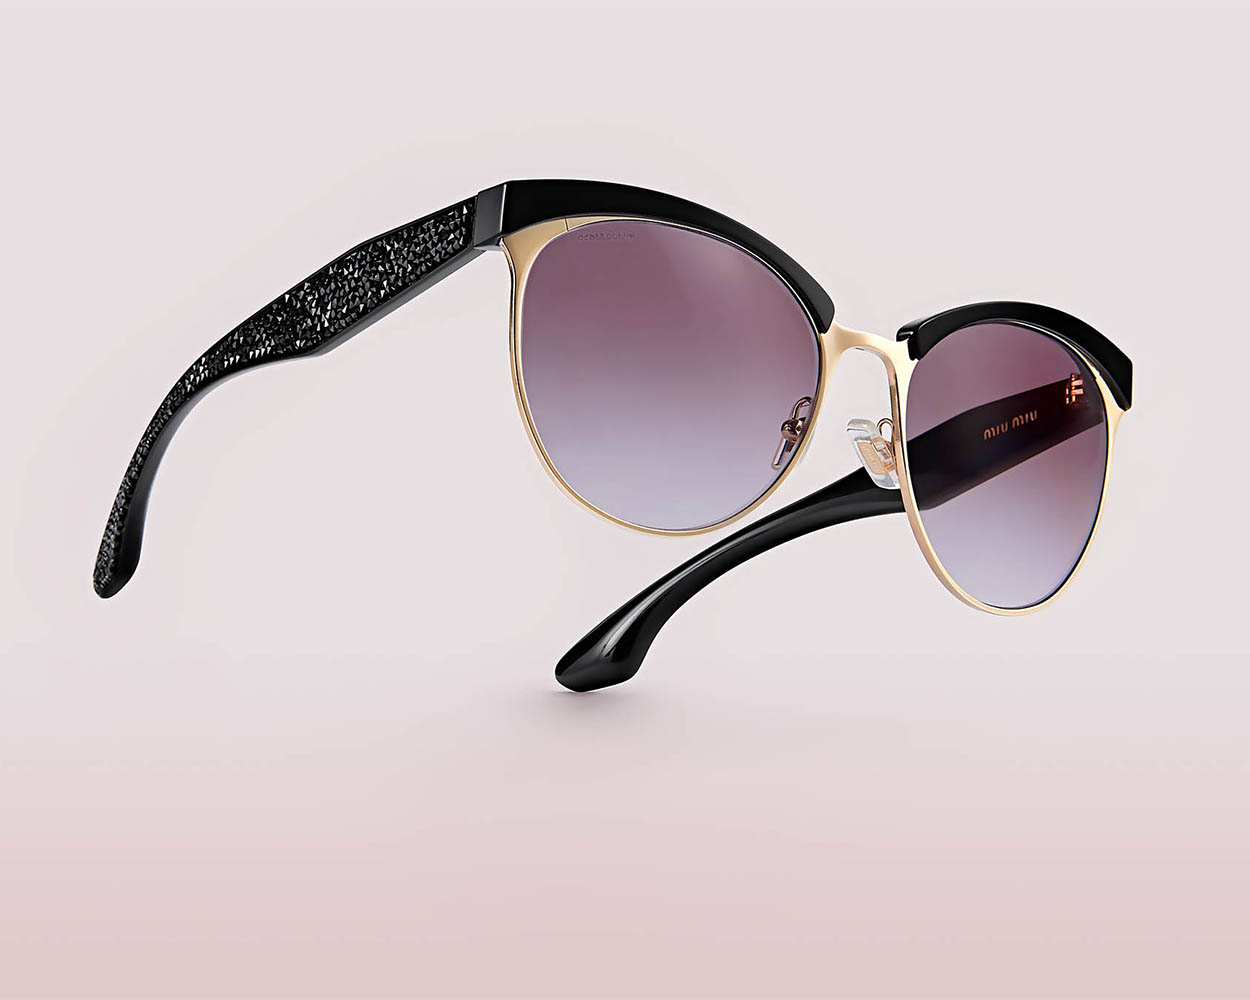 paul_christey_photography_brisbane_product_miu_miu_sunglasses_low-res